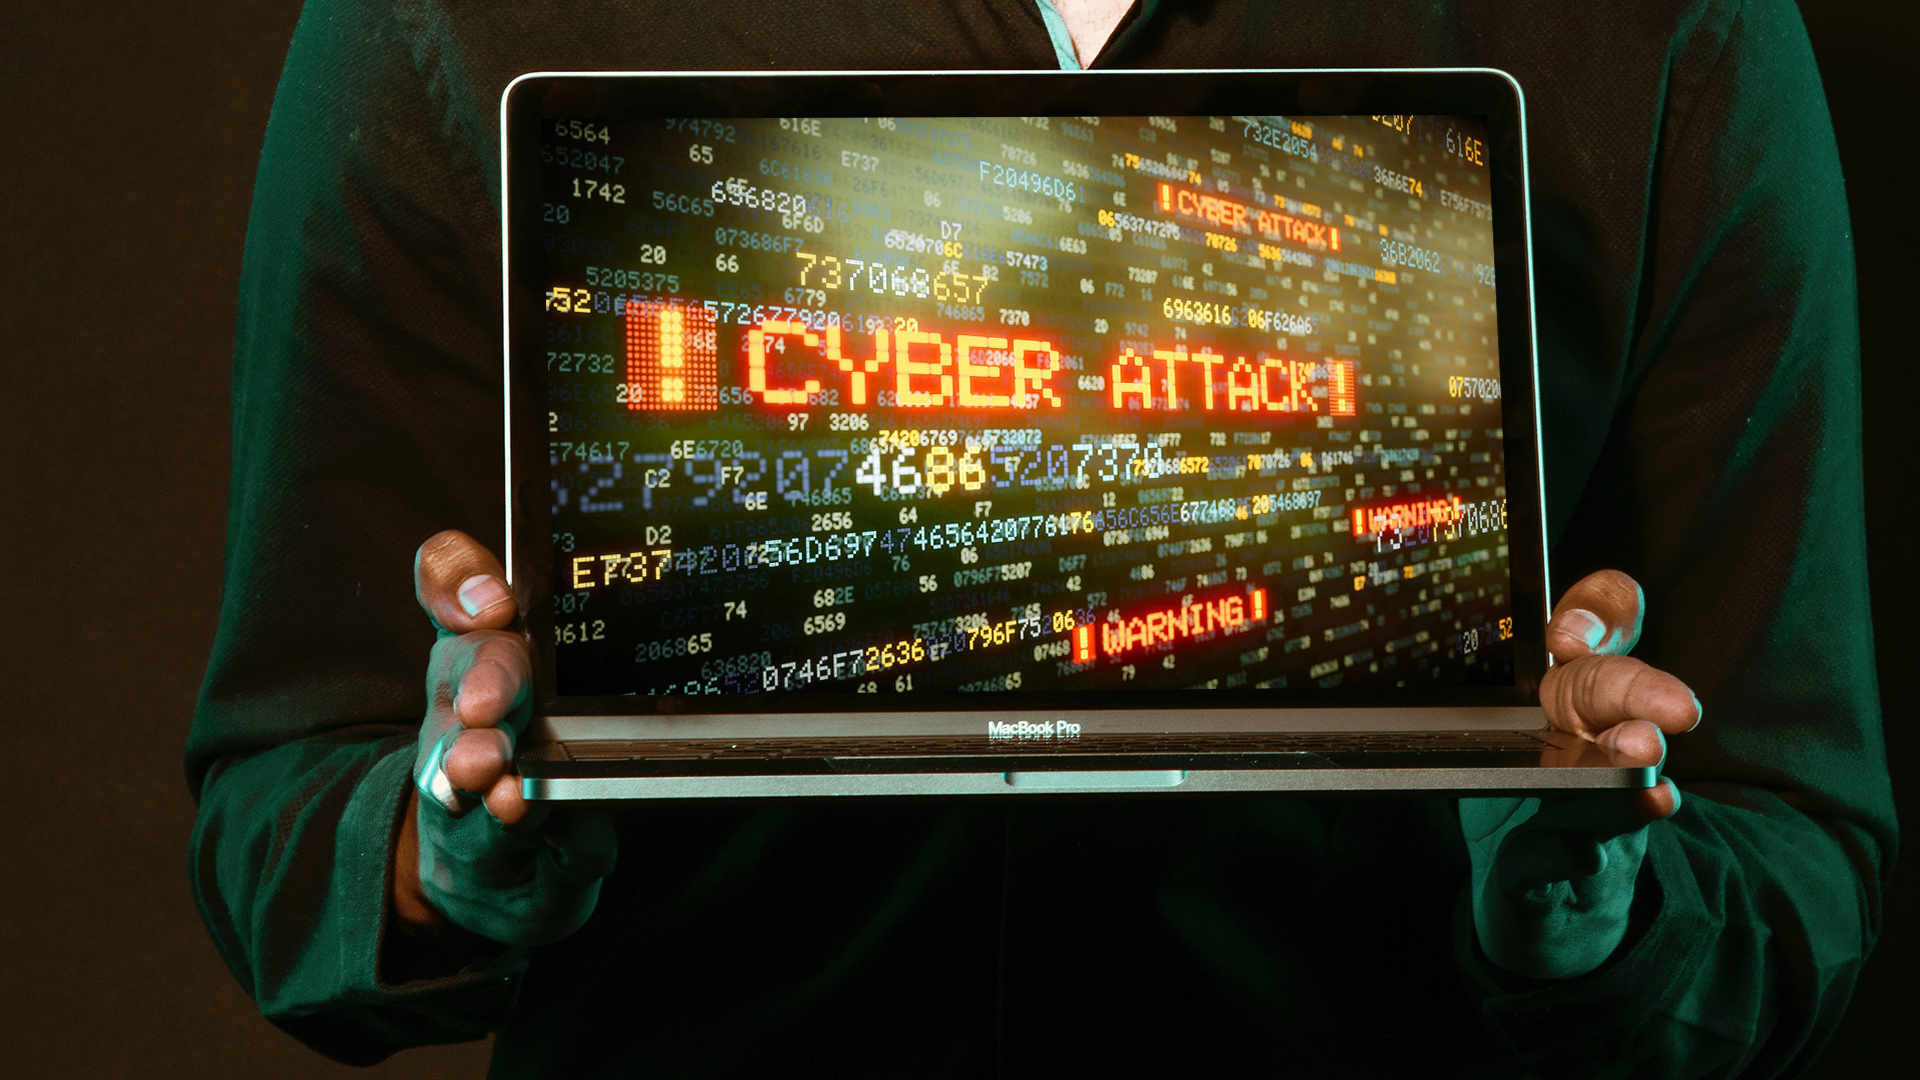 Half of APAC corporate cyberattack victims did not know what hit them: poll